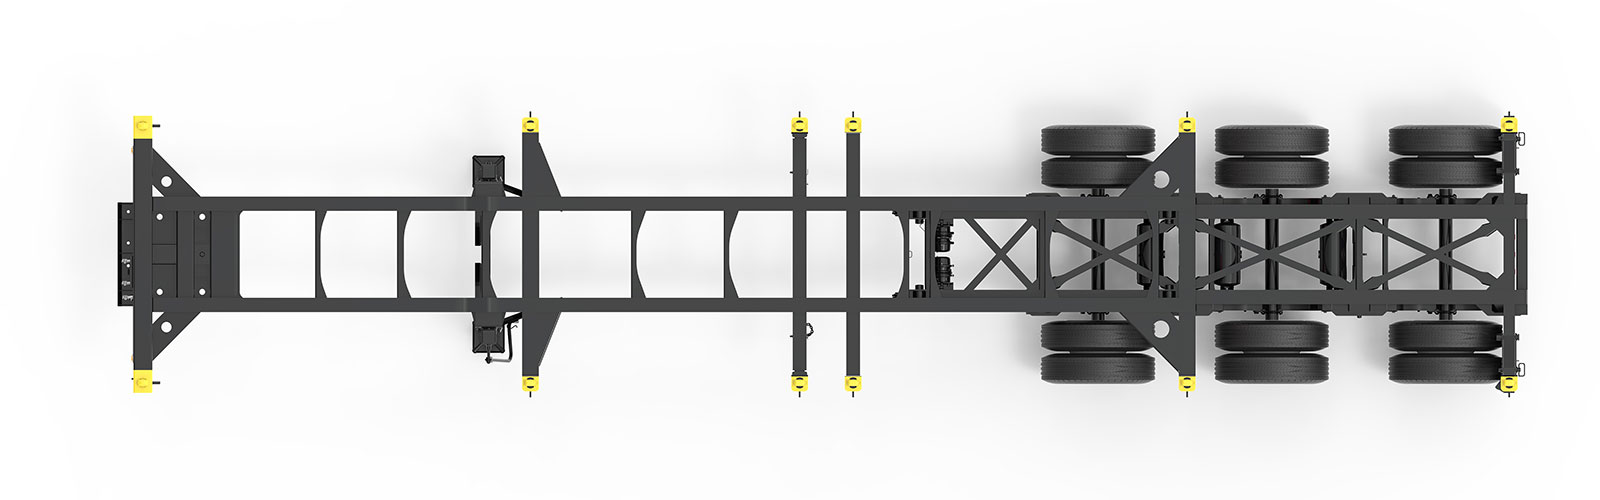 20-40' Combo Tridem Container Chassis Orthographic Top View Final